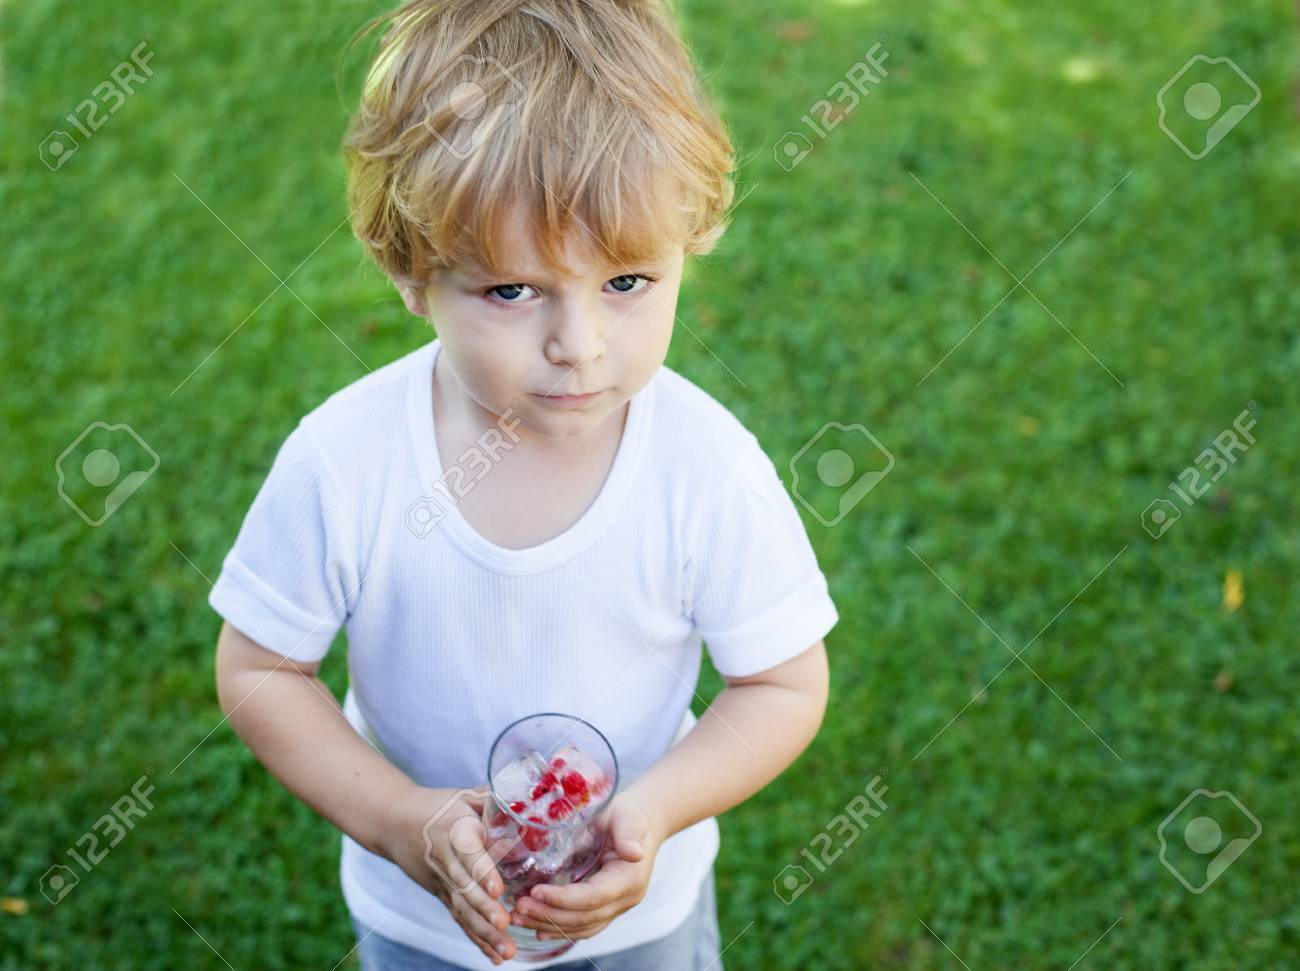 Beautiful toddler boy in summer garden with glass of berry ice cubes Stock Photo - 17213262